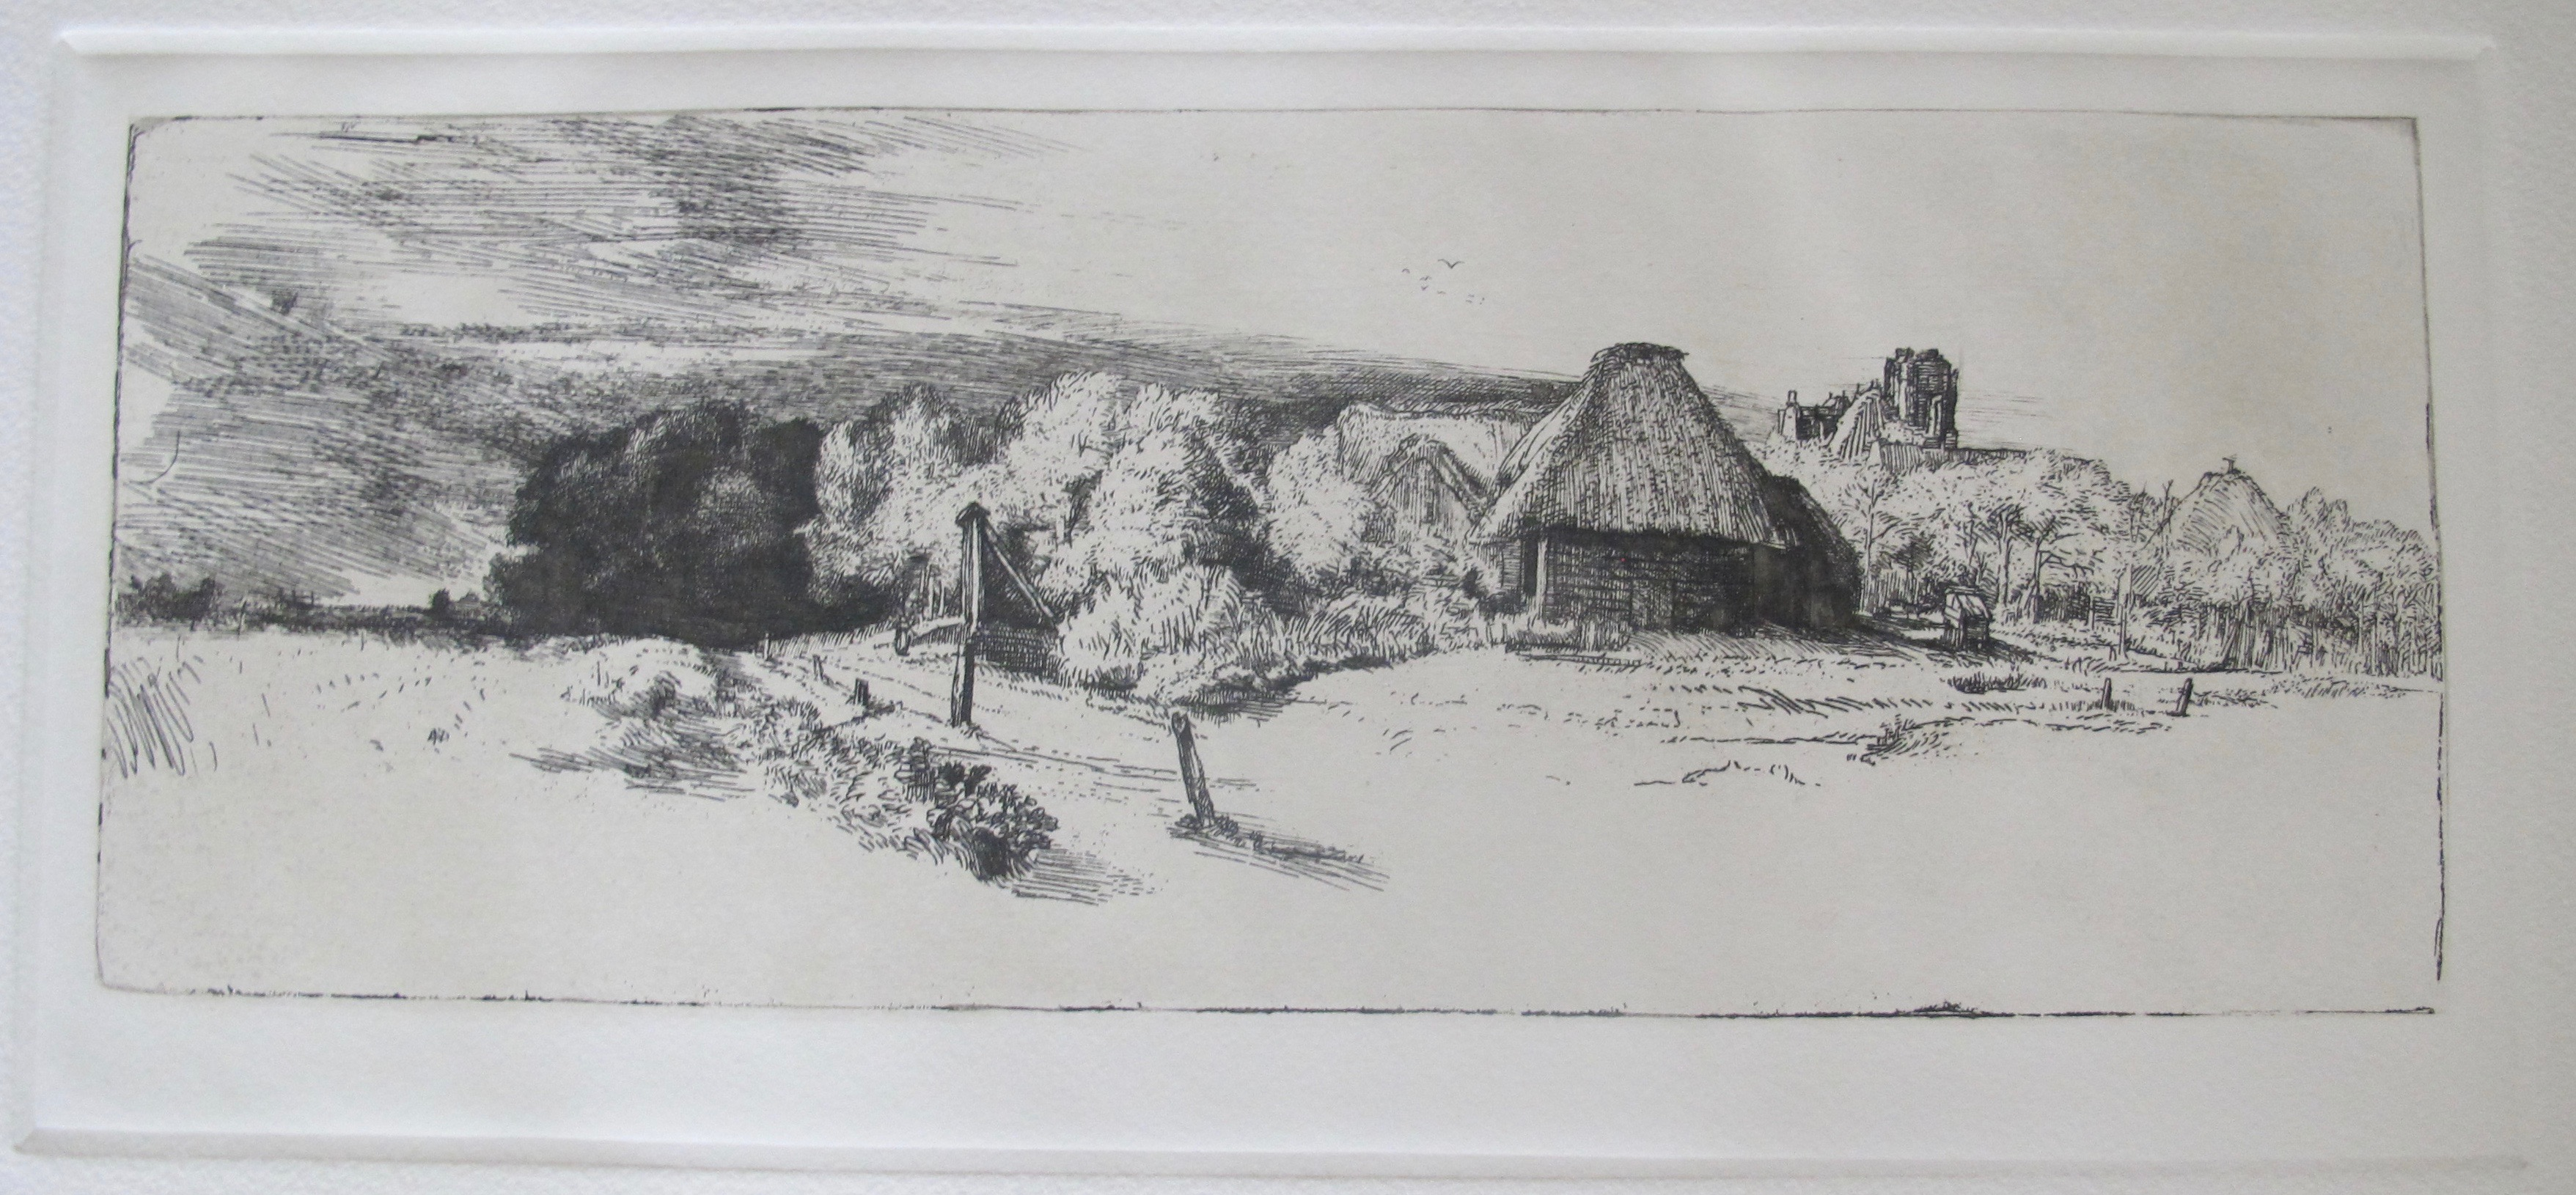 REMBRANDT LANDSCAPE WITH TREES FARM BUILDING & TOWER Etching by Amand Durand